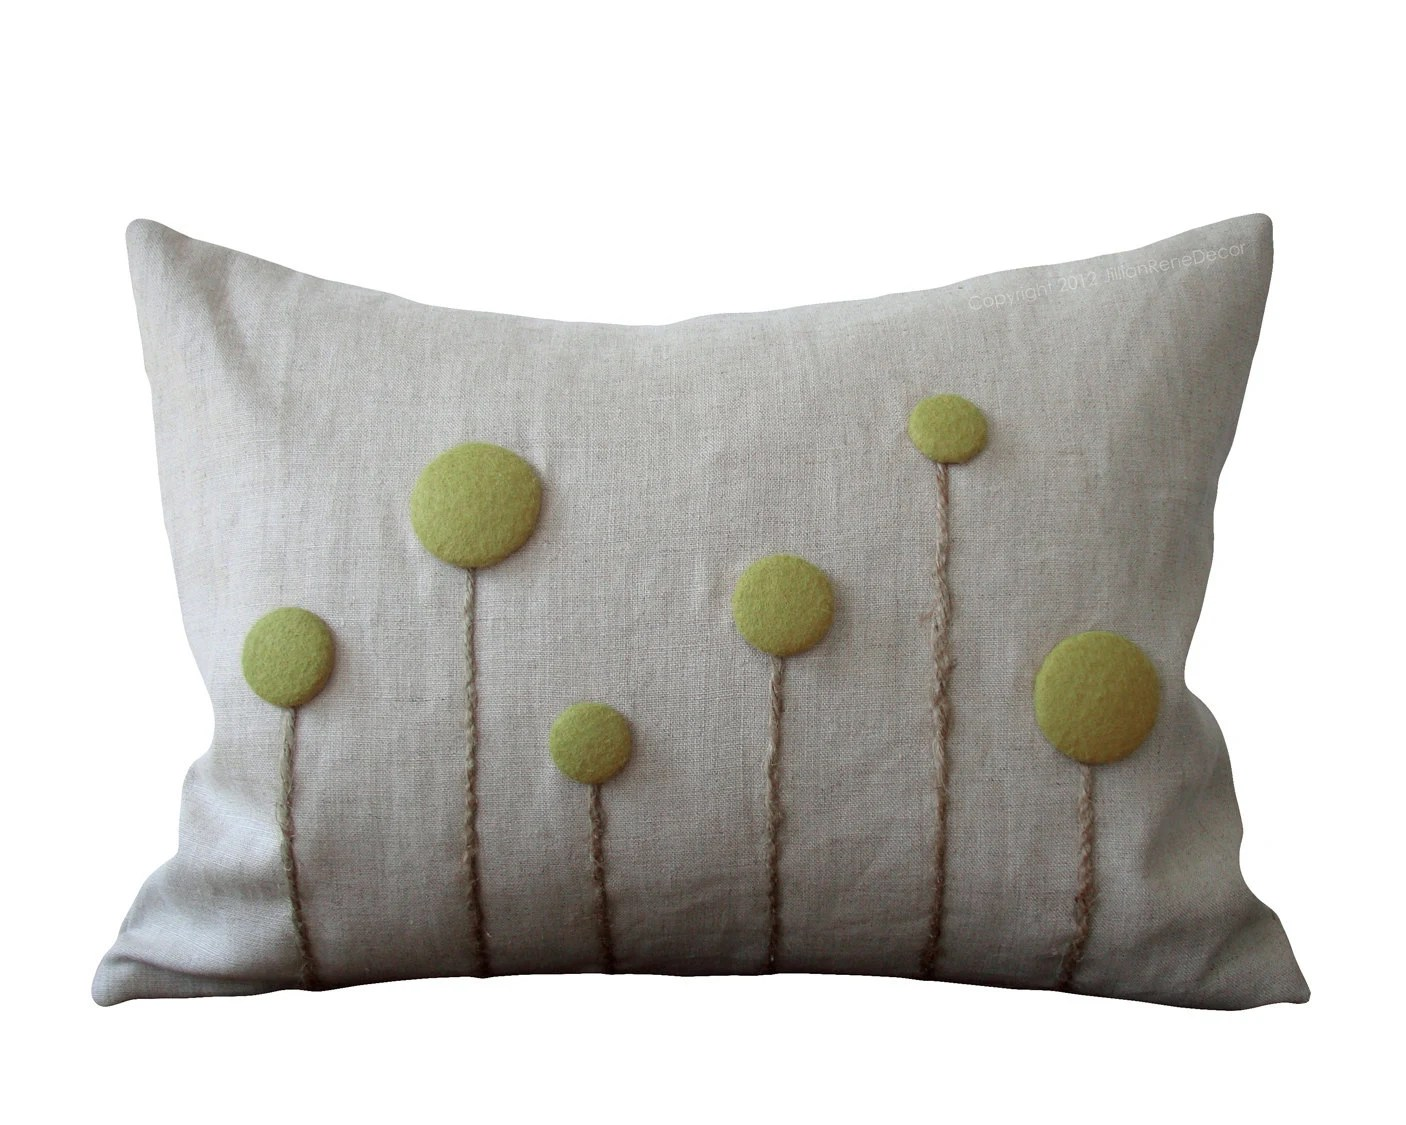 Sage Green Billy Ball Flower Pillow in Natural Linen by JillianReneDecor Billy Button Botanical Spring Home Decor Woodland Craspedia - JillianReneDecor